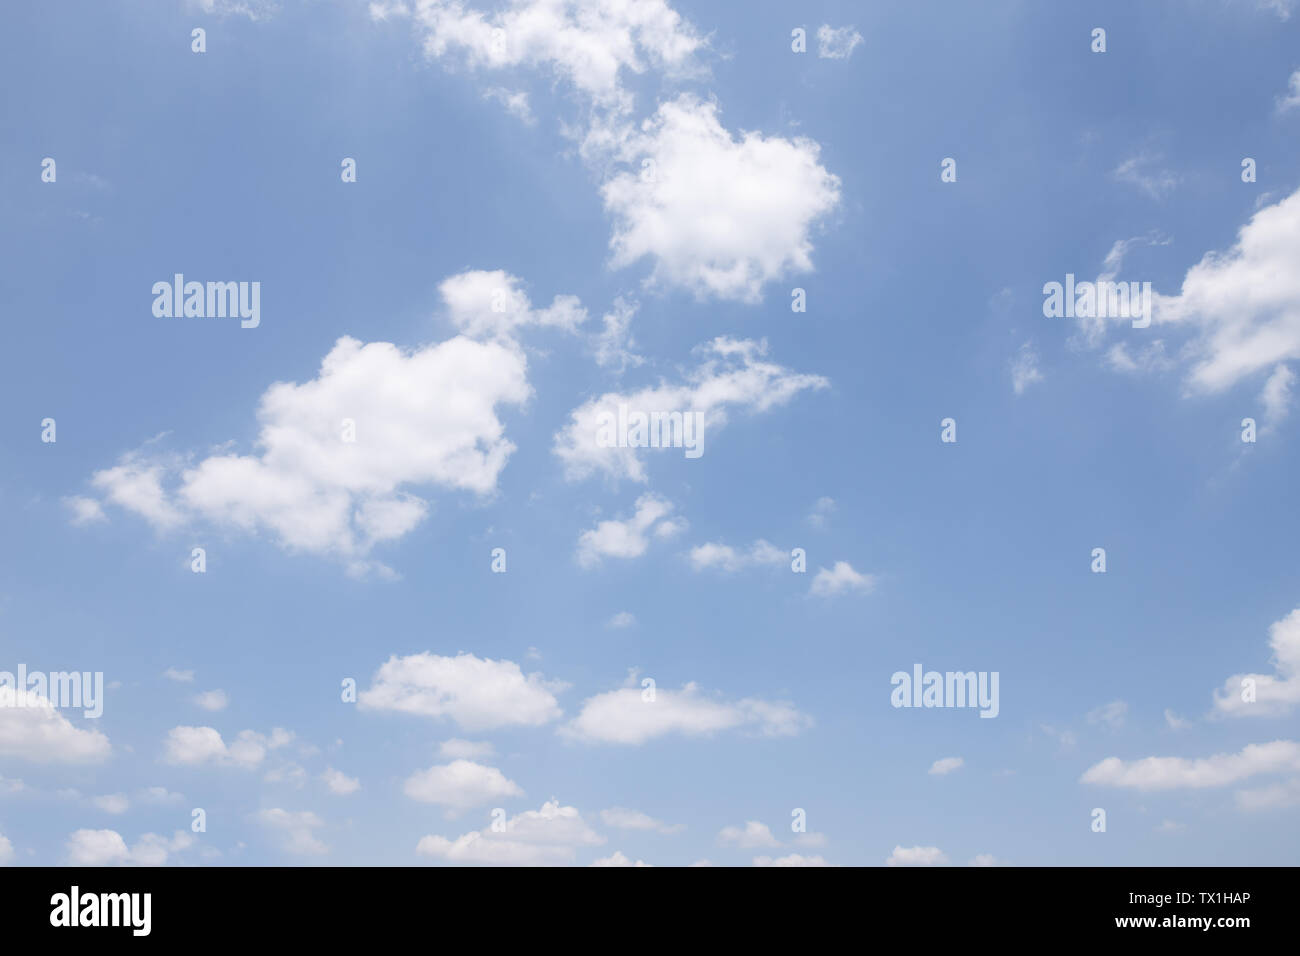 clear, blue sky and white cloud float in the air - Stock Image